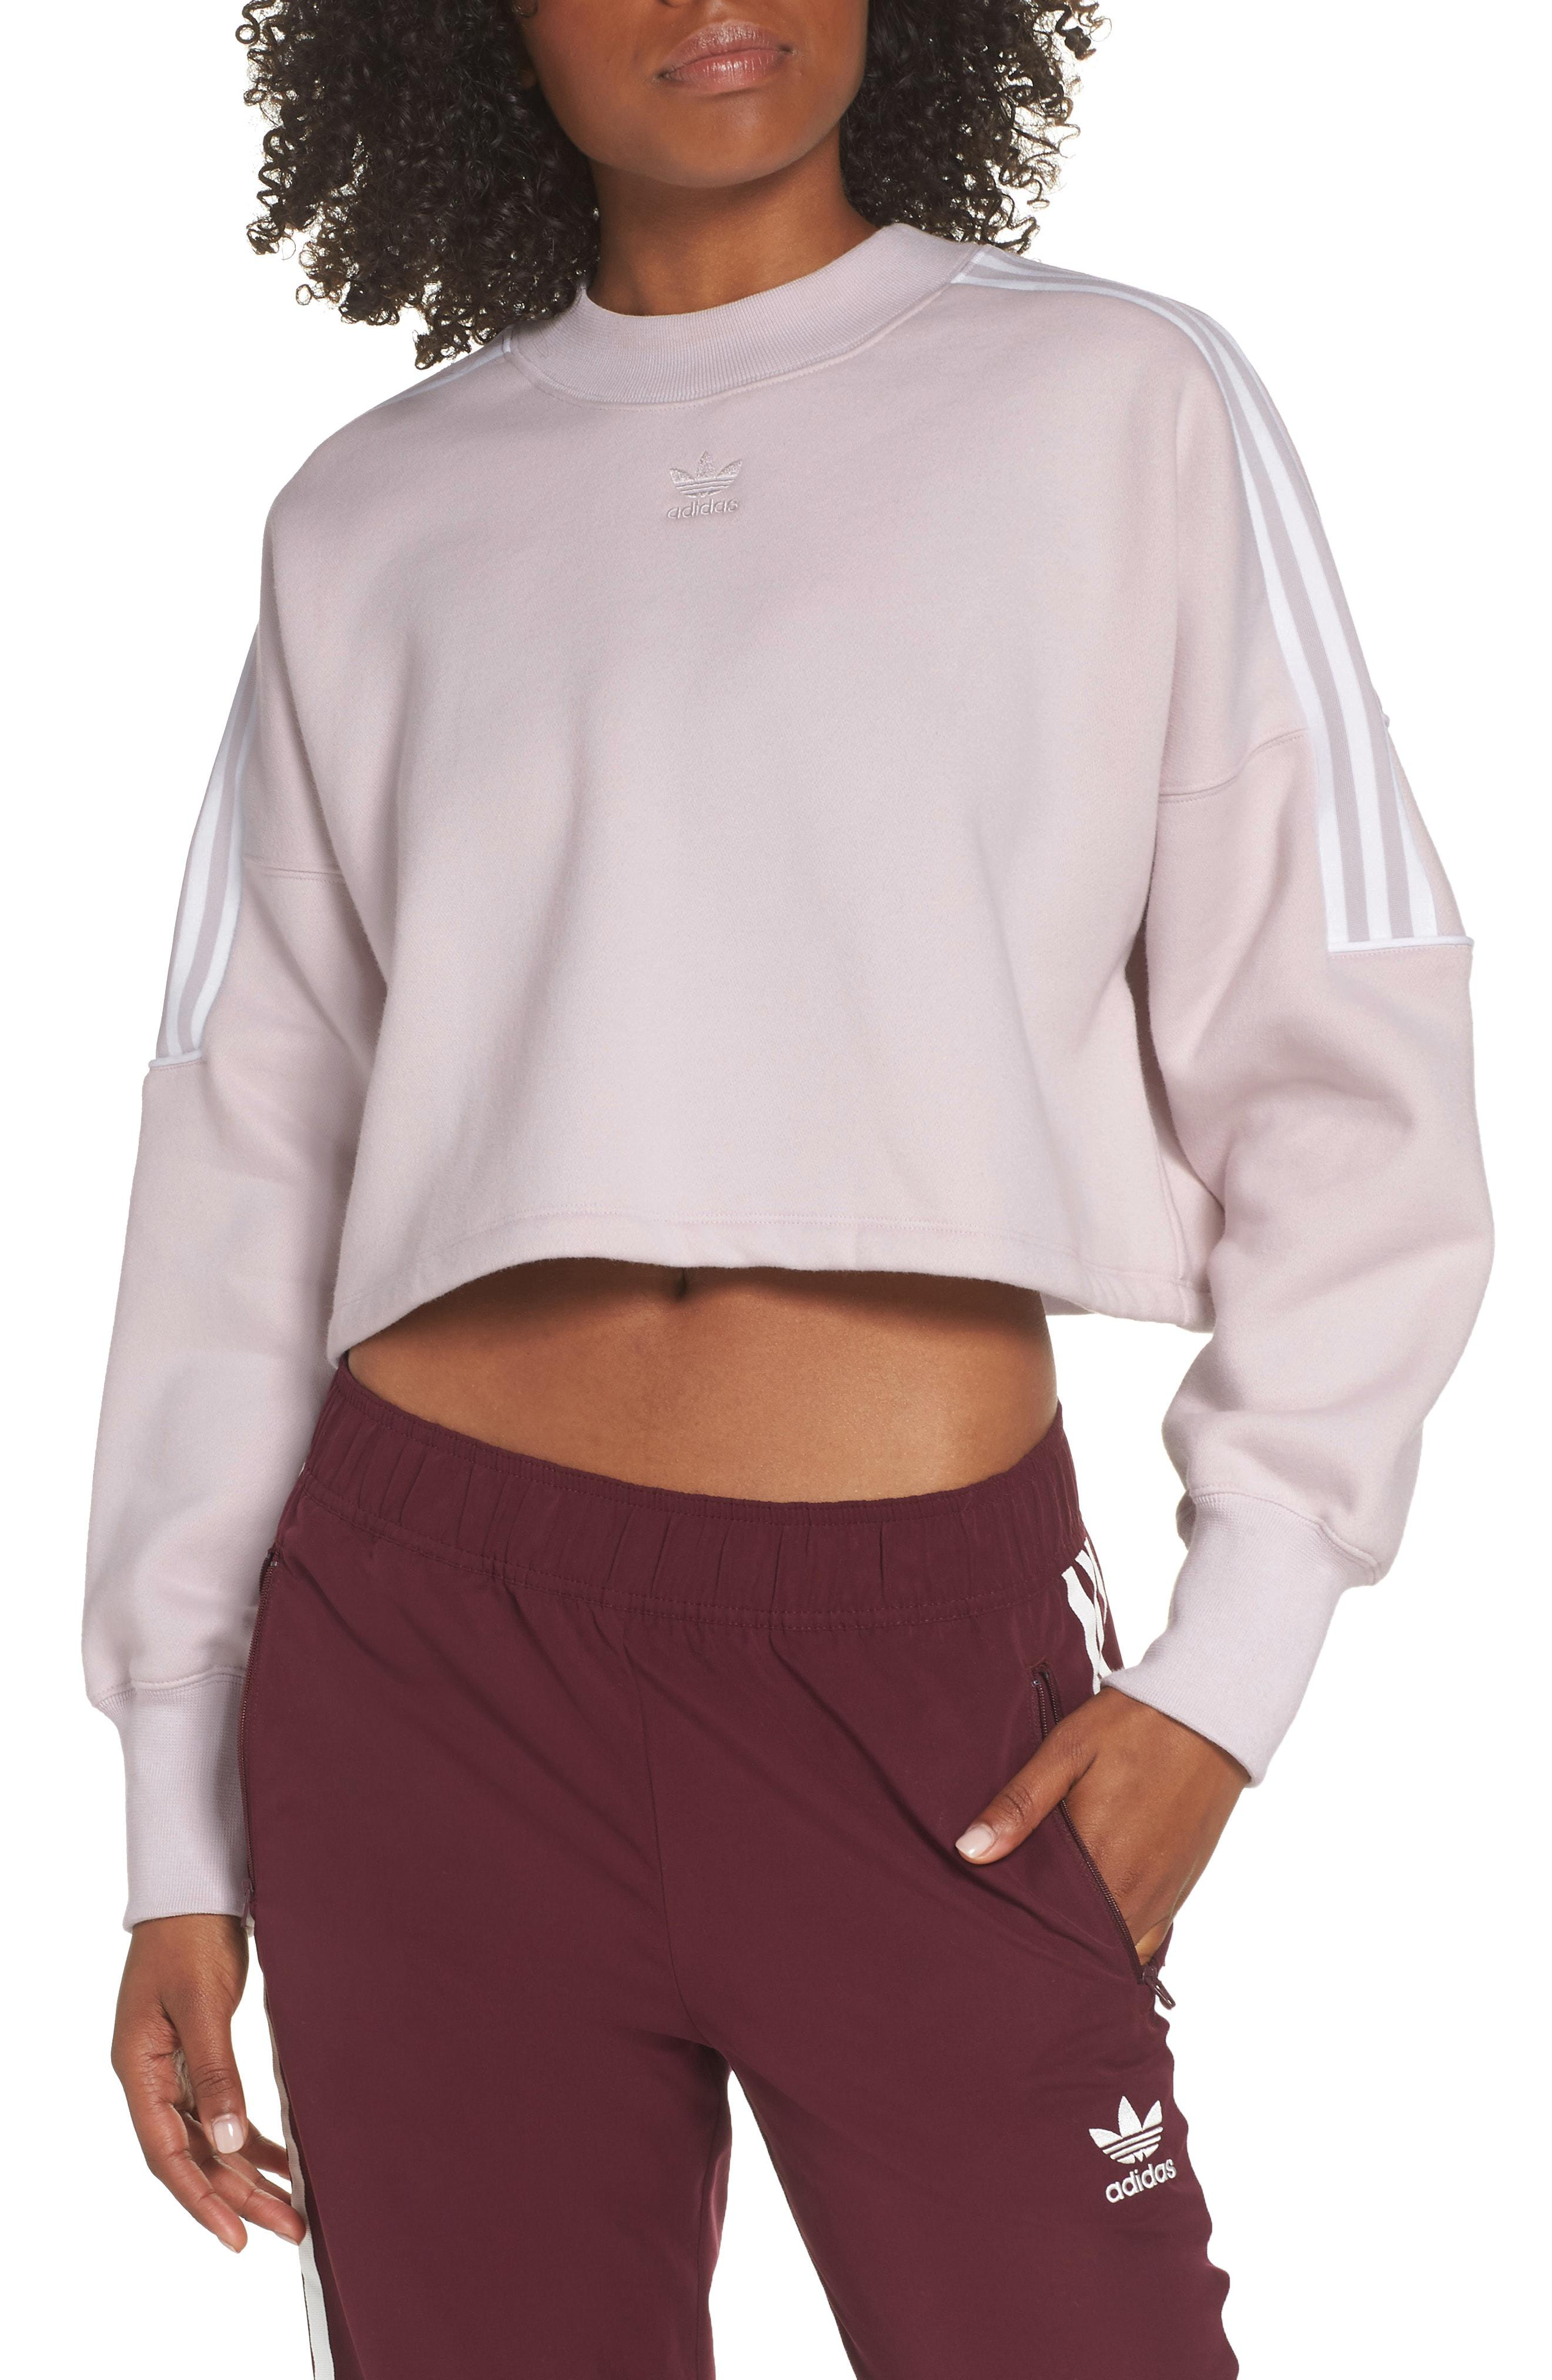 Adidas - Purple Originals Crop Sweatshirt - Lyst. View fullscreen 6f3c880bfb8